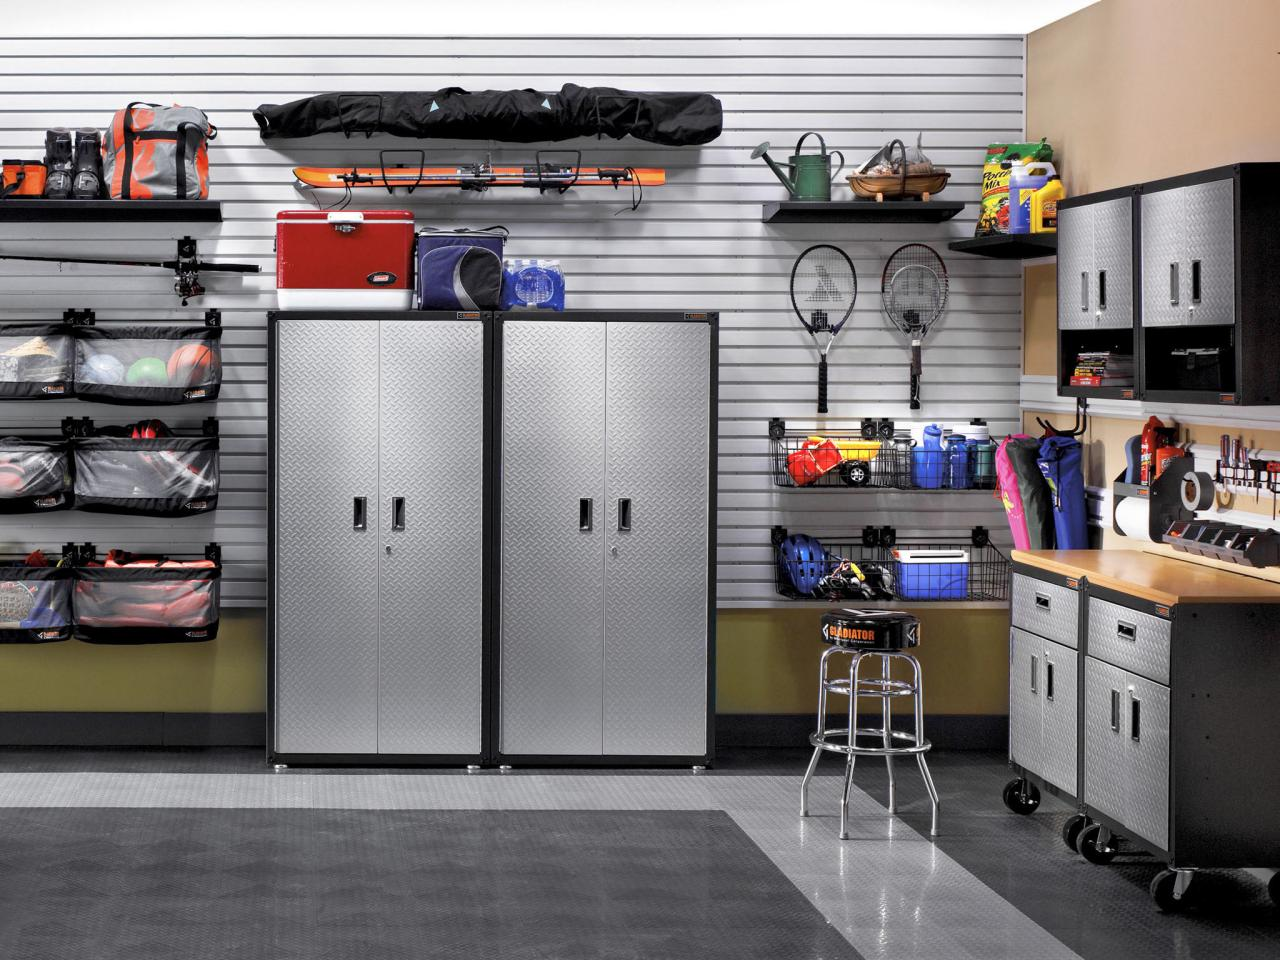 garage organization ideas - Great Tips for Garage Organization